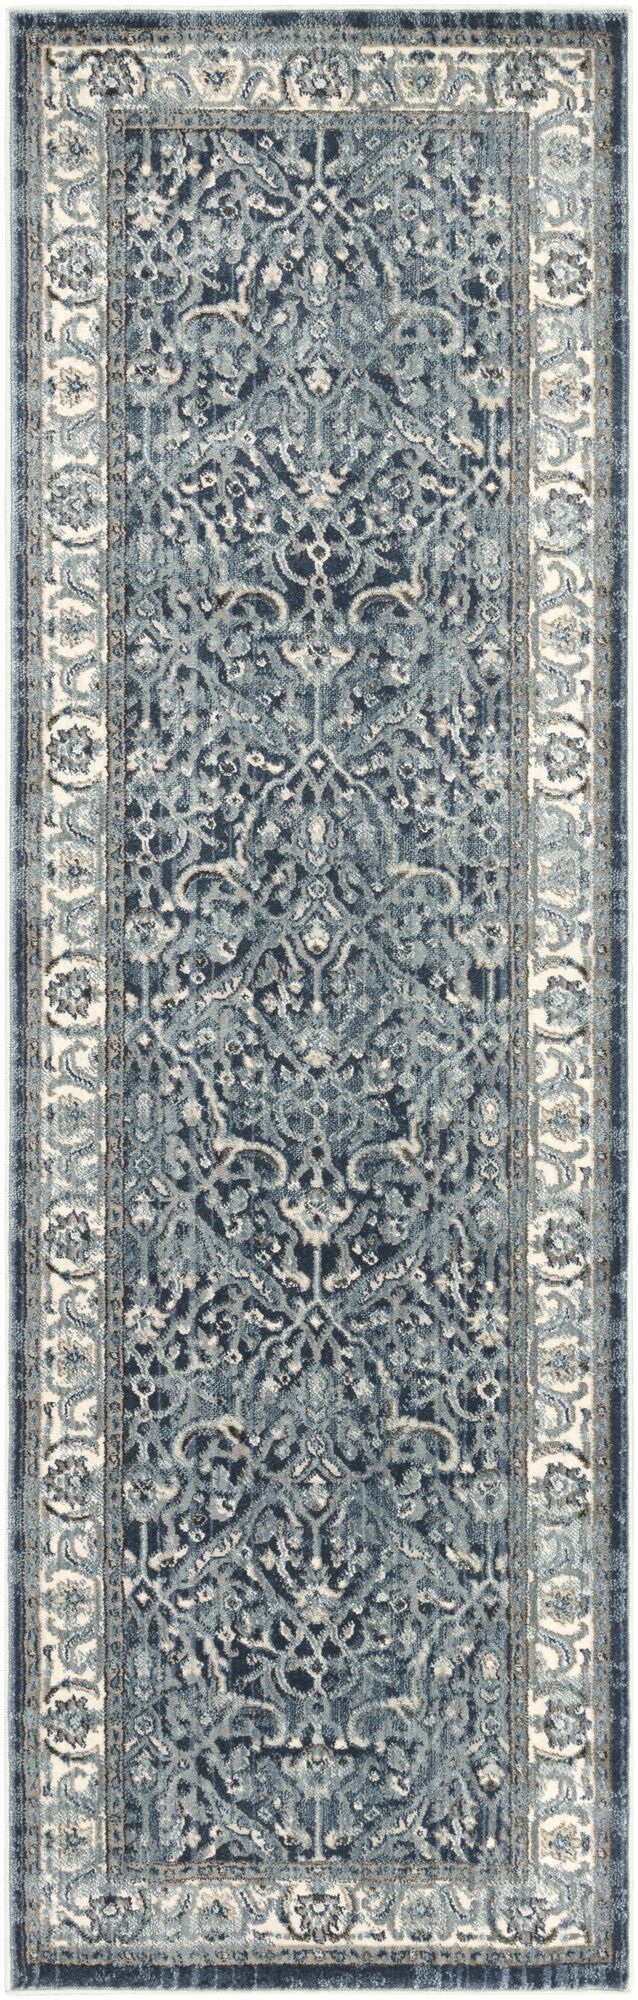 Mablethorpe Distressed Navy/Gray Area Rug